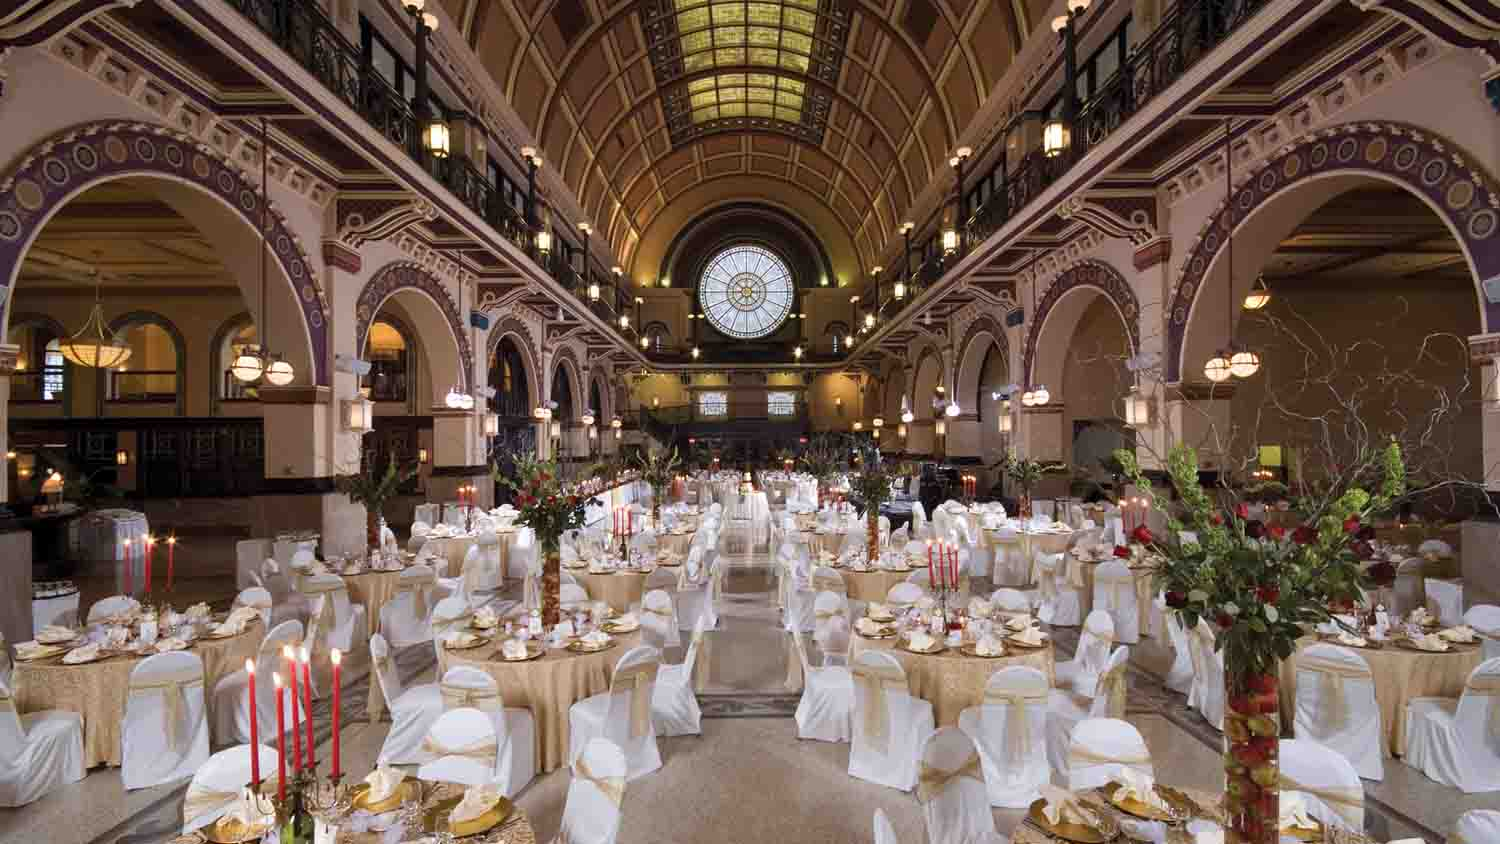 Grand Hall & Conference Center at Historic Union Station 3